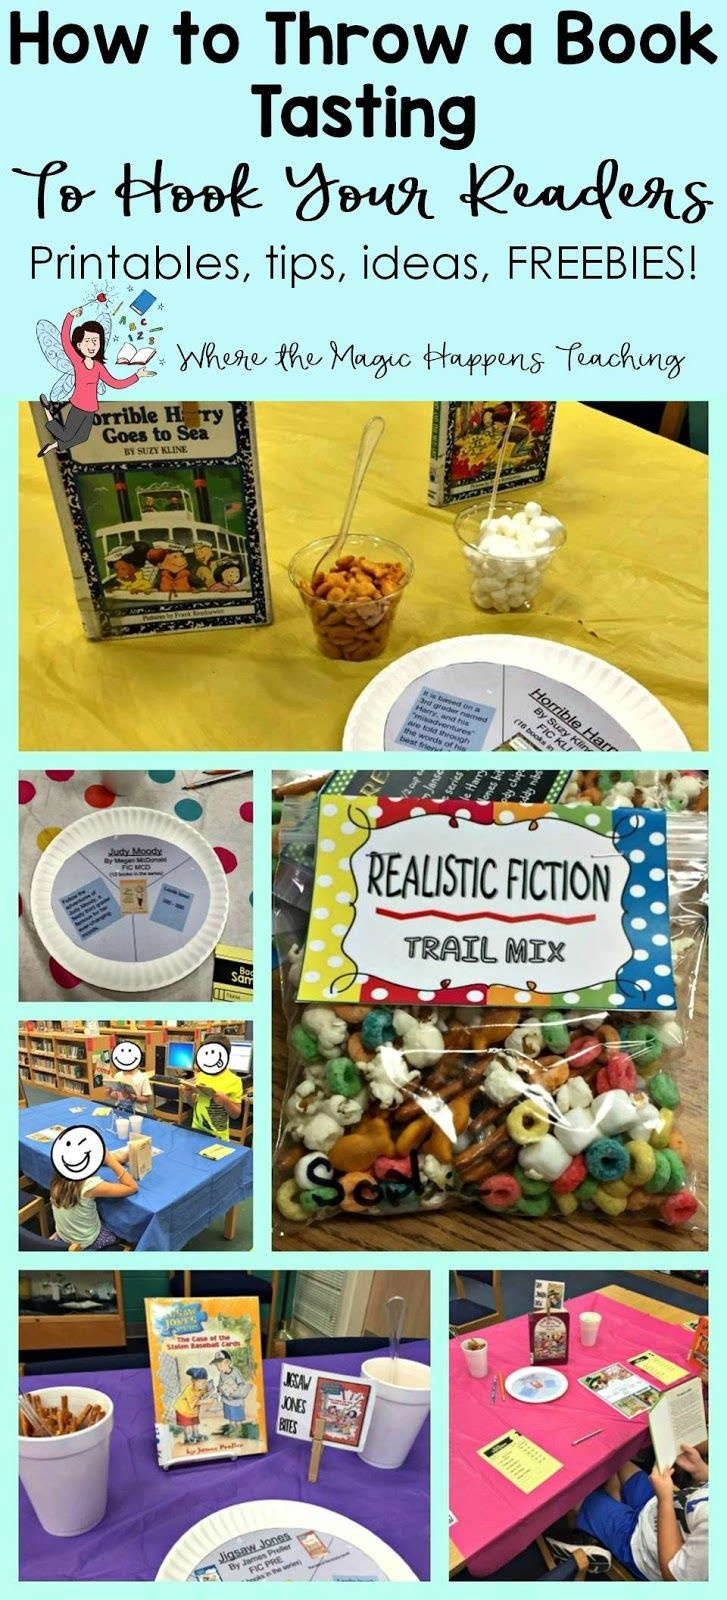 How To Throw A Book Tasting For 2Nd Graders | Where The Magic - Free Printable Level H Books